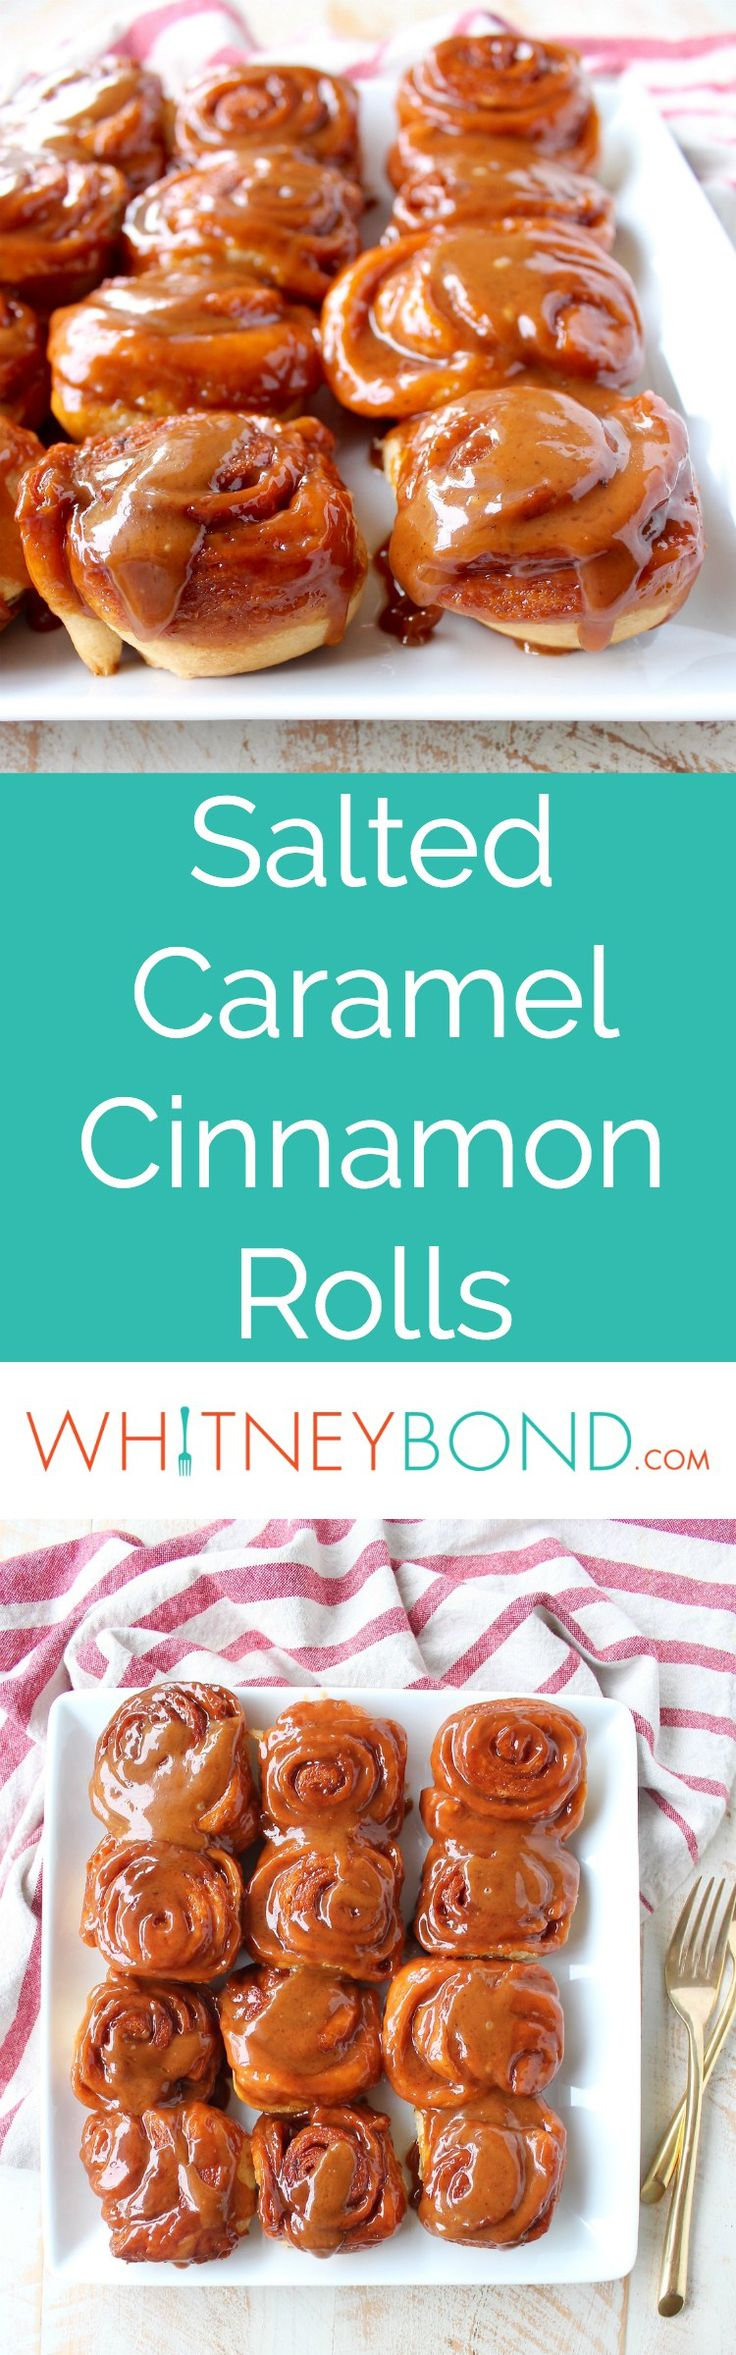 Salted Caramel Cinnamon Rolls are sweet, decadent and delicious, they're made with canned crescent roll dough for an easy breakfast or brunch recipe! Served with @worldmarket Gold Wave Forks #WorldMarketTribe